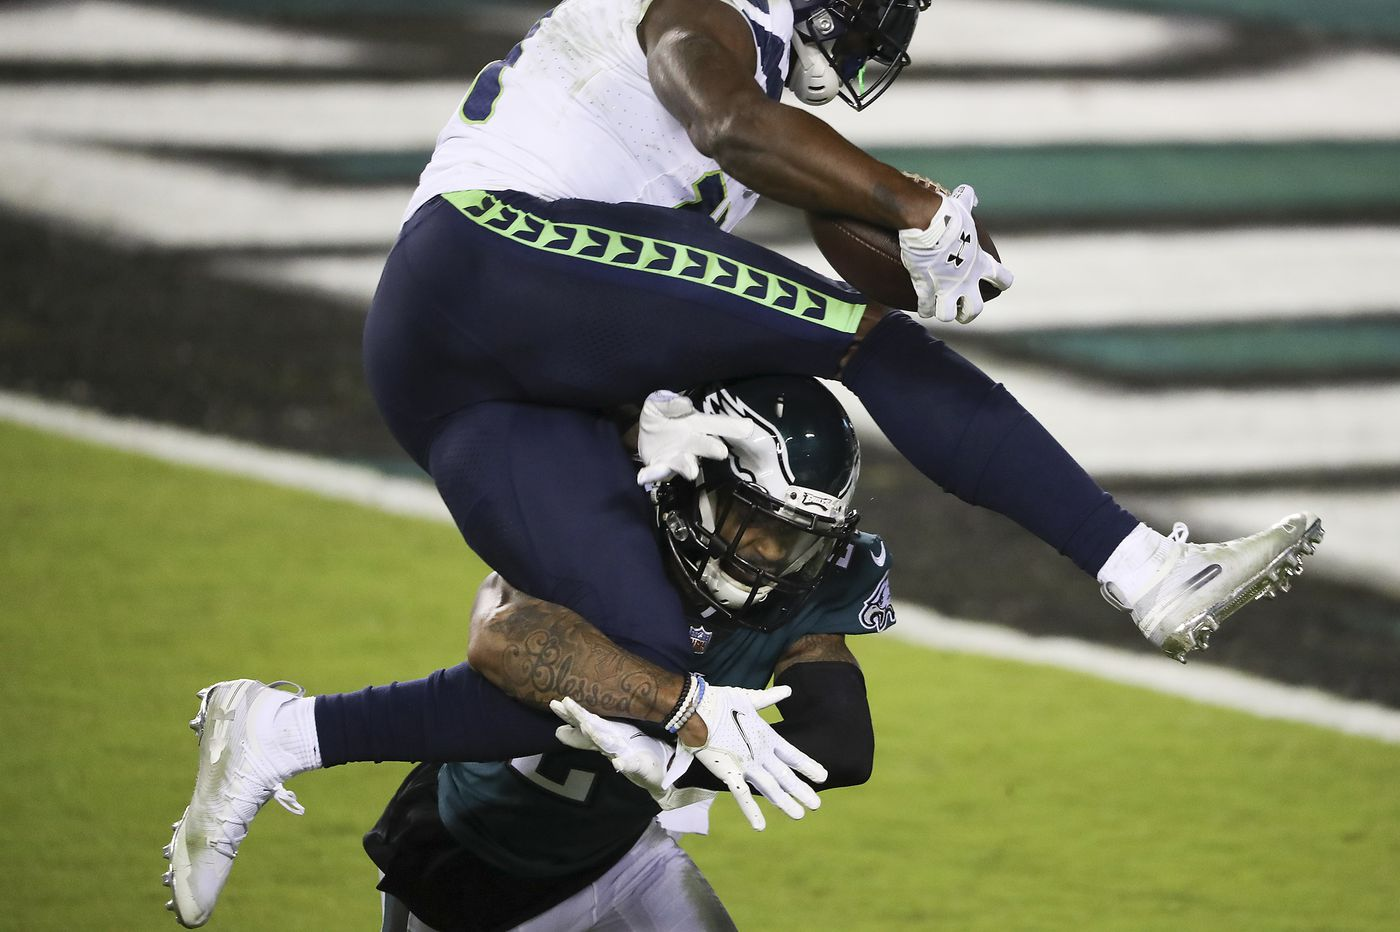 Five reasons why the Eagles lost to the Seahawks and fell to 3-7-1 and out of first place in the NFC East